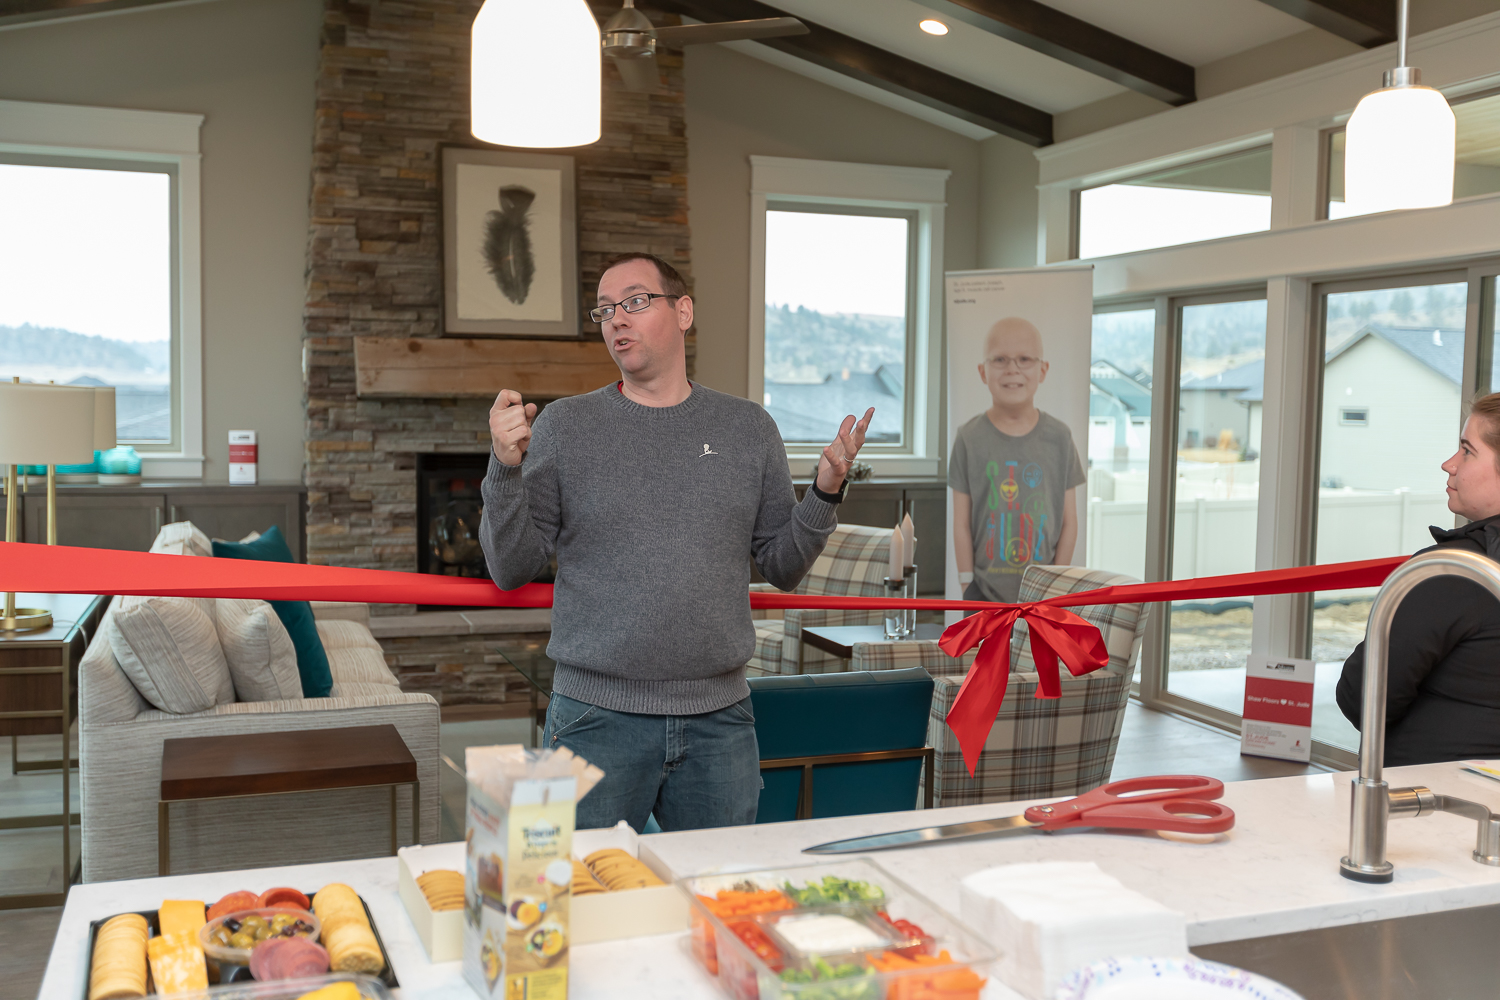 St Jude Home Ribbon Cutting Event-16.jpg